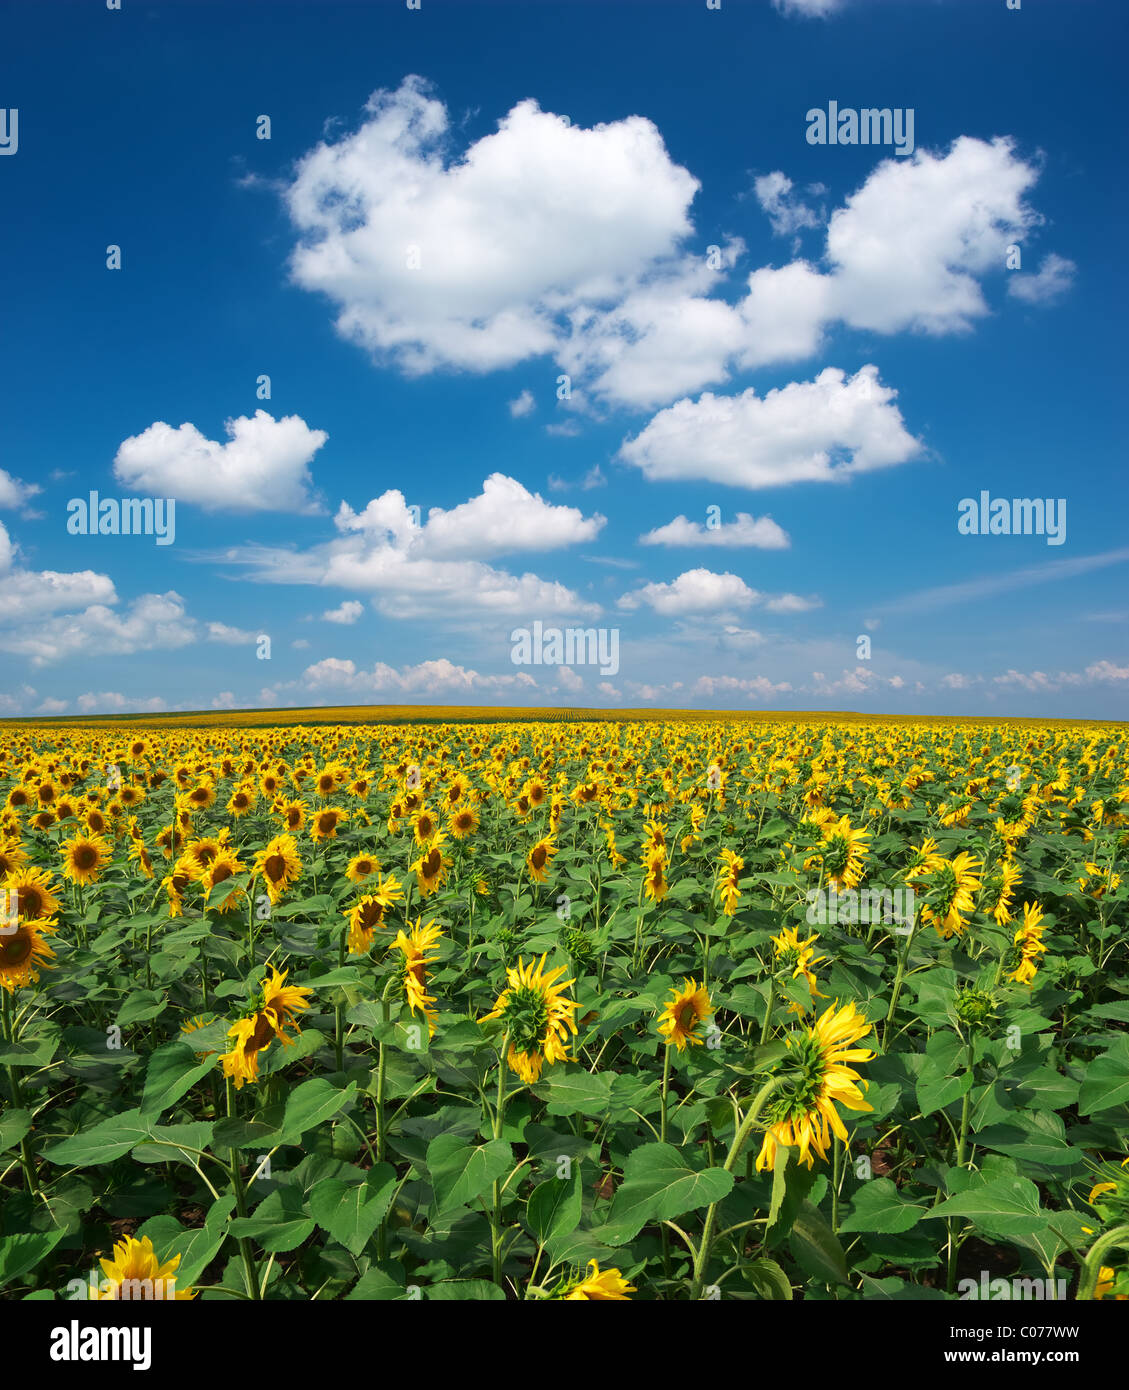 Big field of sunflowers. Composition of nature. Stock Photo